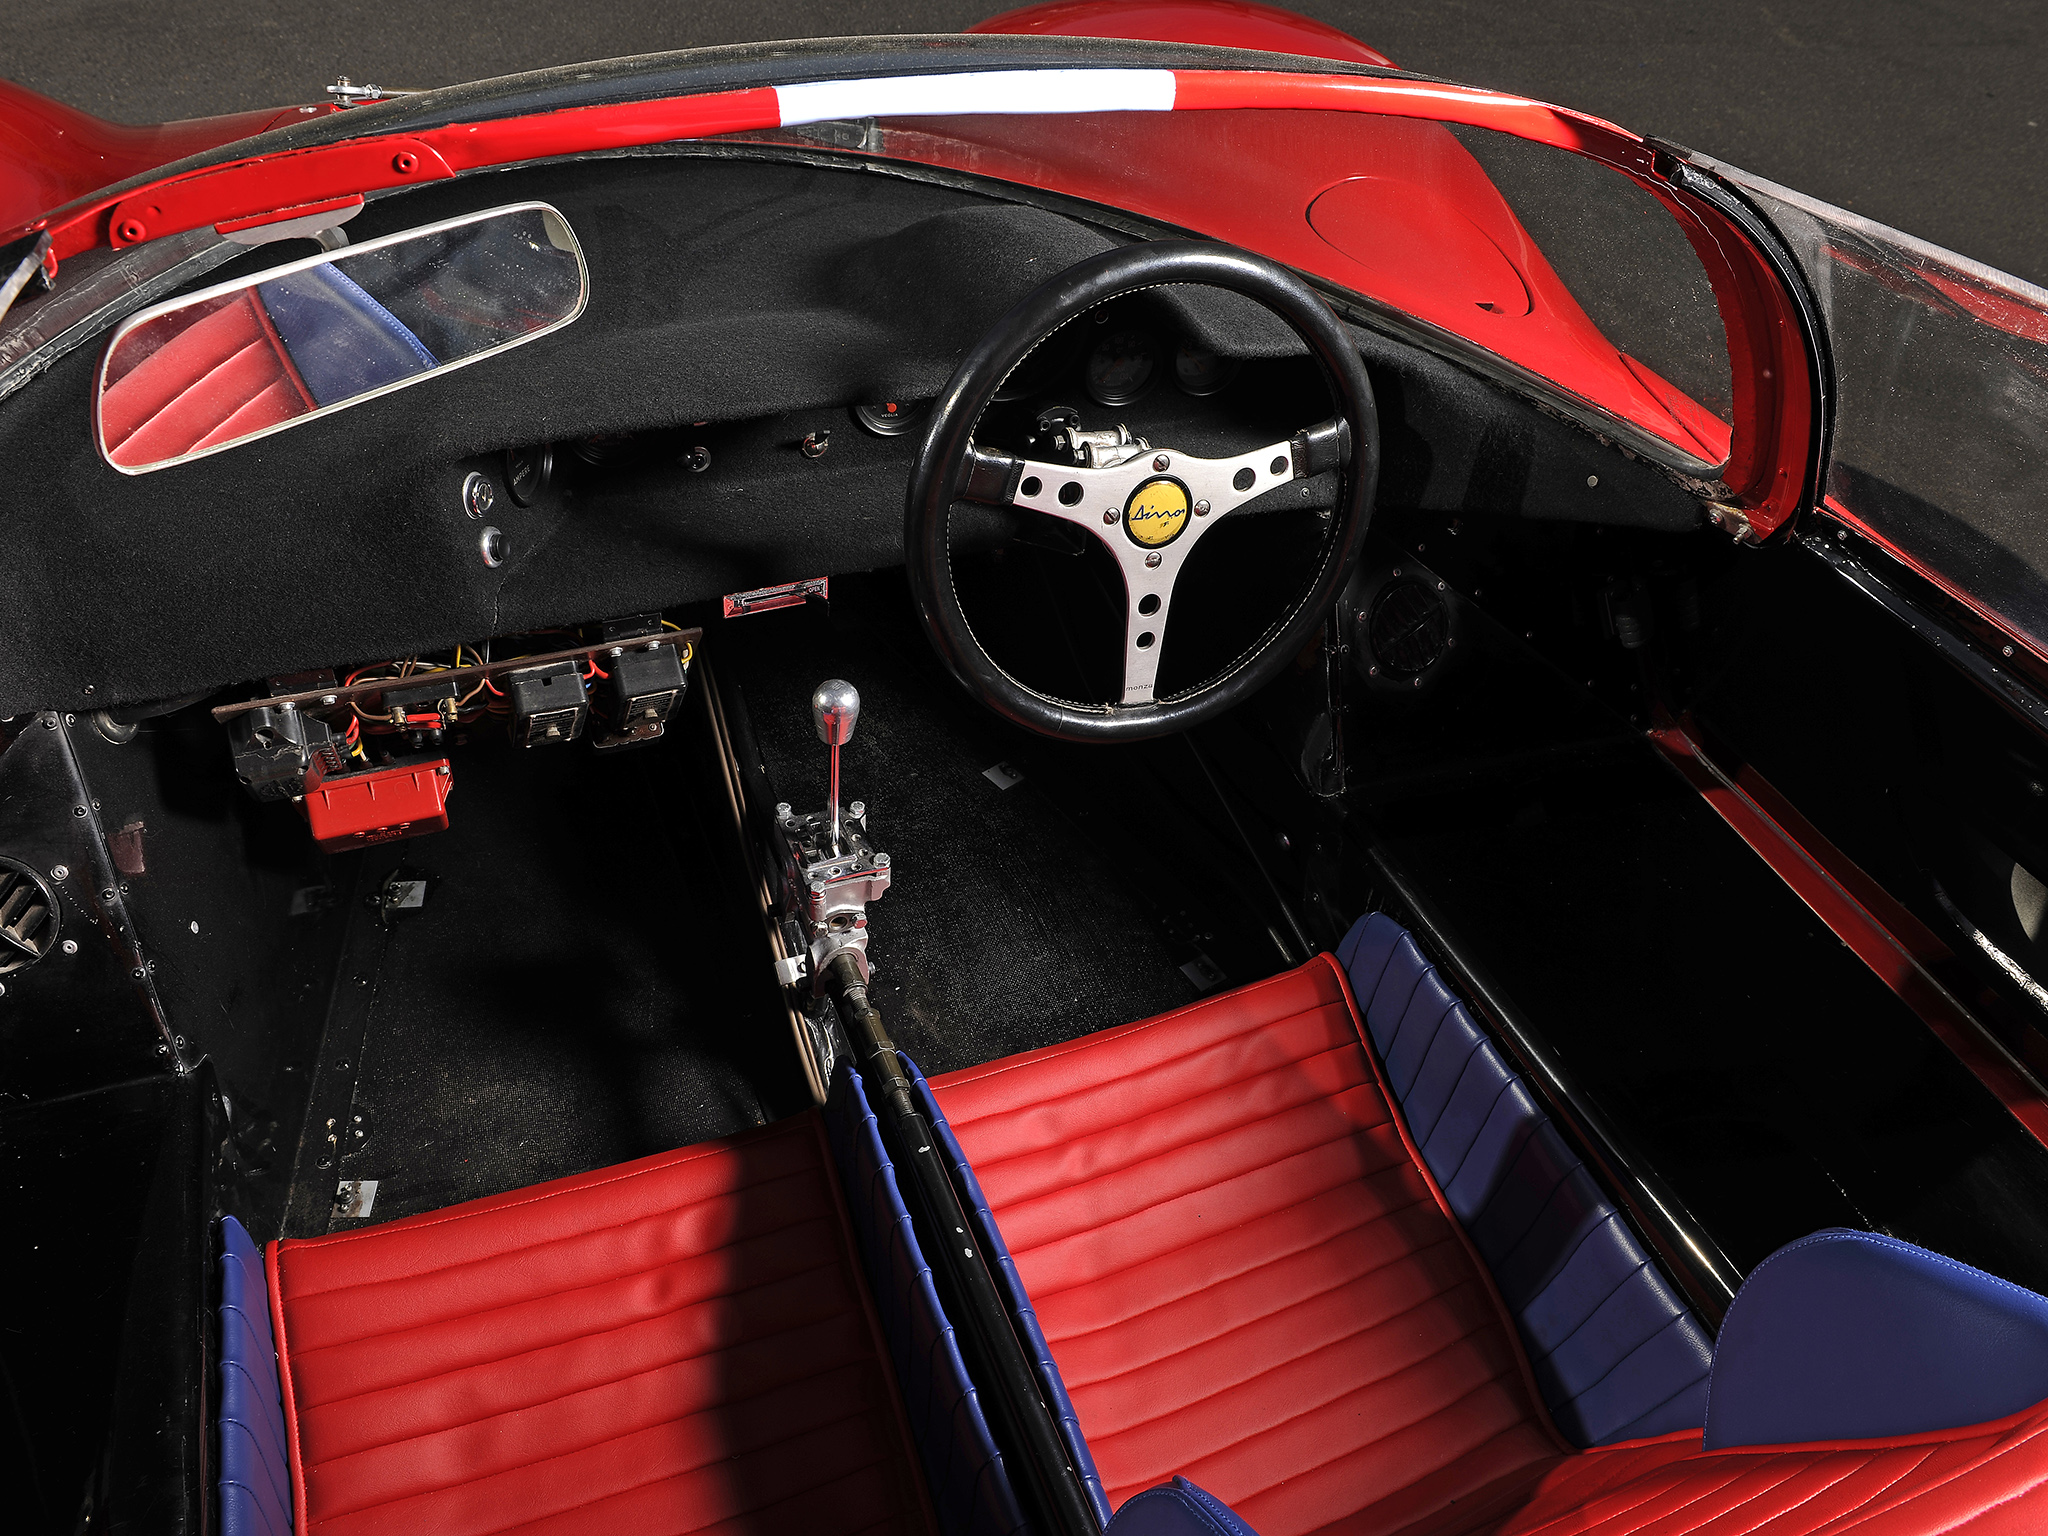 1966 ferrari 206 s dino spyder by carrozzeria supercar race racing classic interior g wallpaper. Black Bedroom Furniture Sets. Home Design Ideas